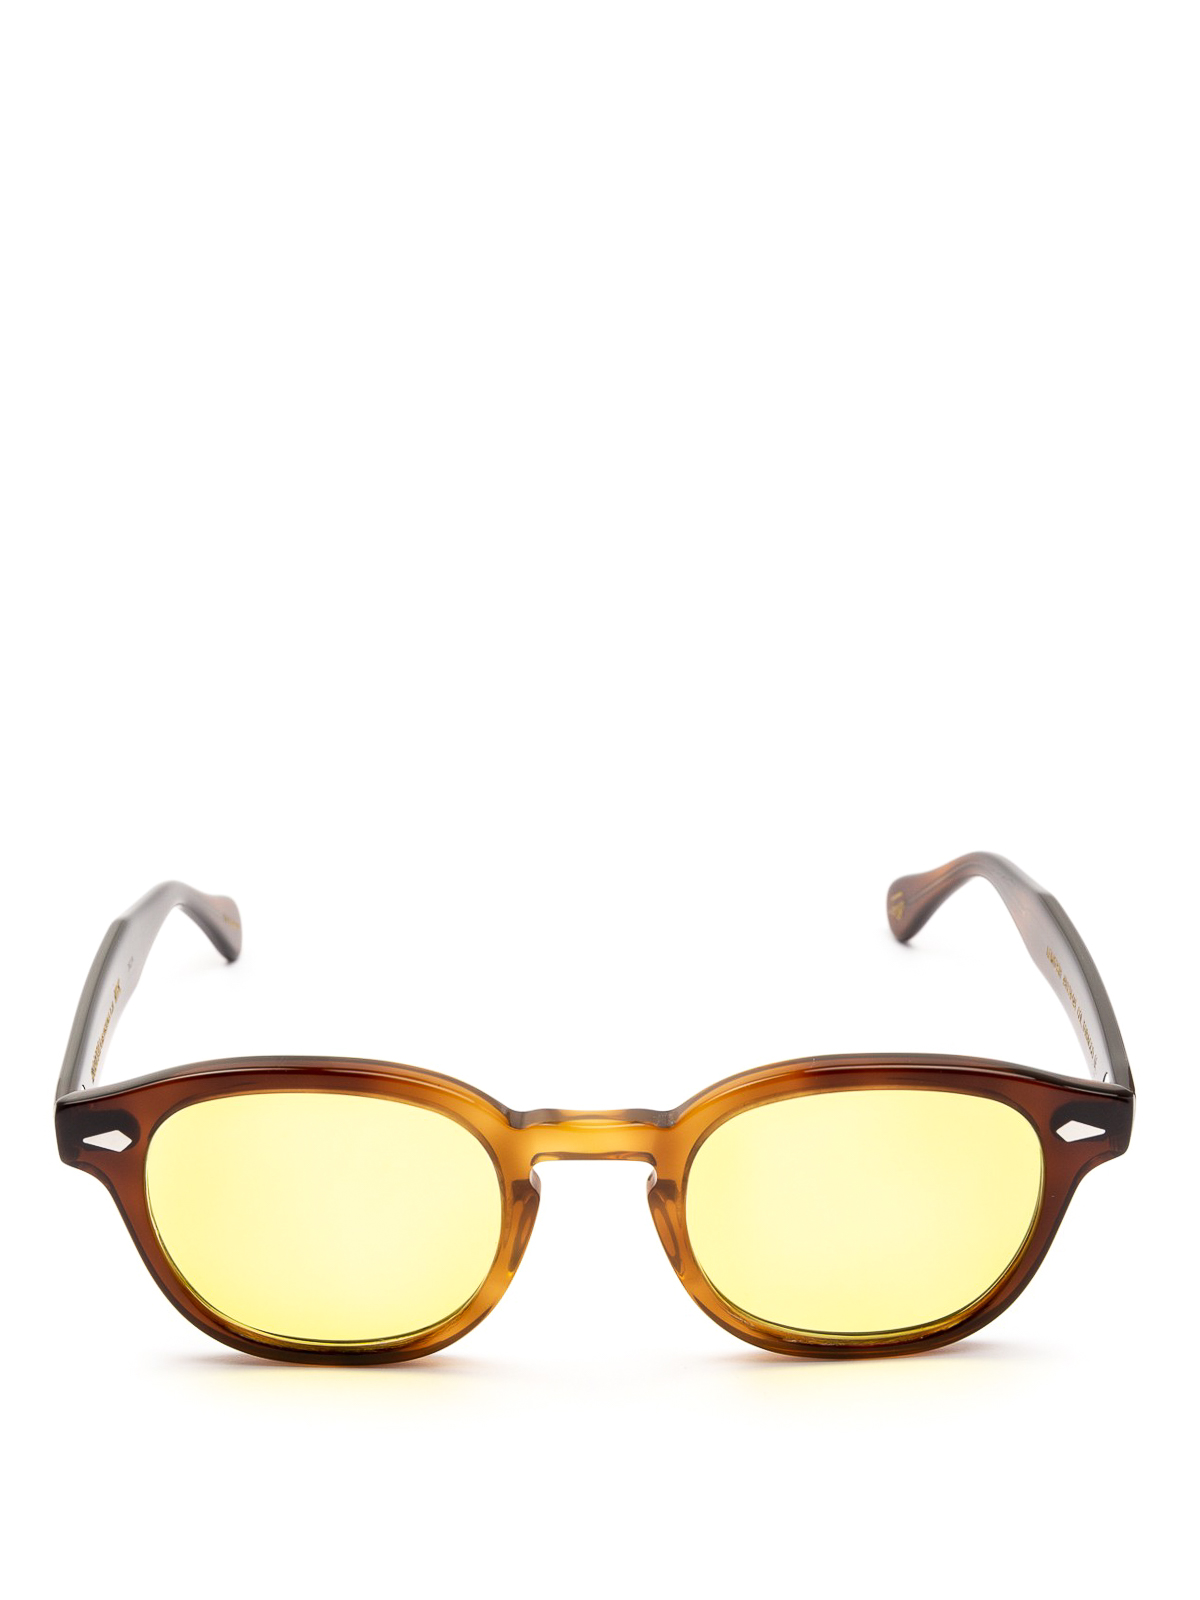 cf40ee38d19 MOSCOT  sunglasses online - Lemtosh yellow lens tobacco sunglasses